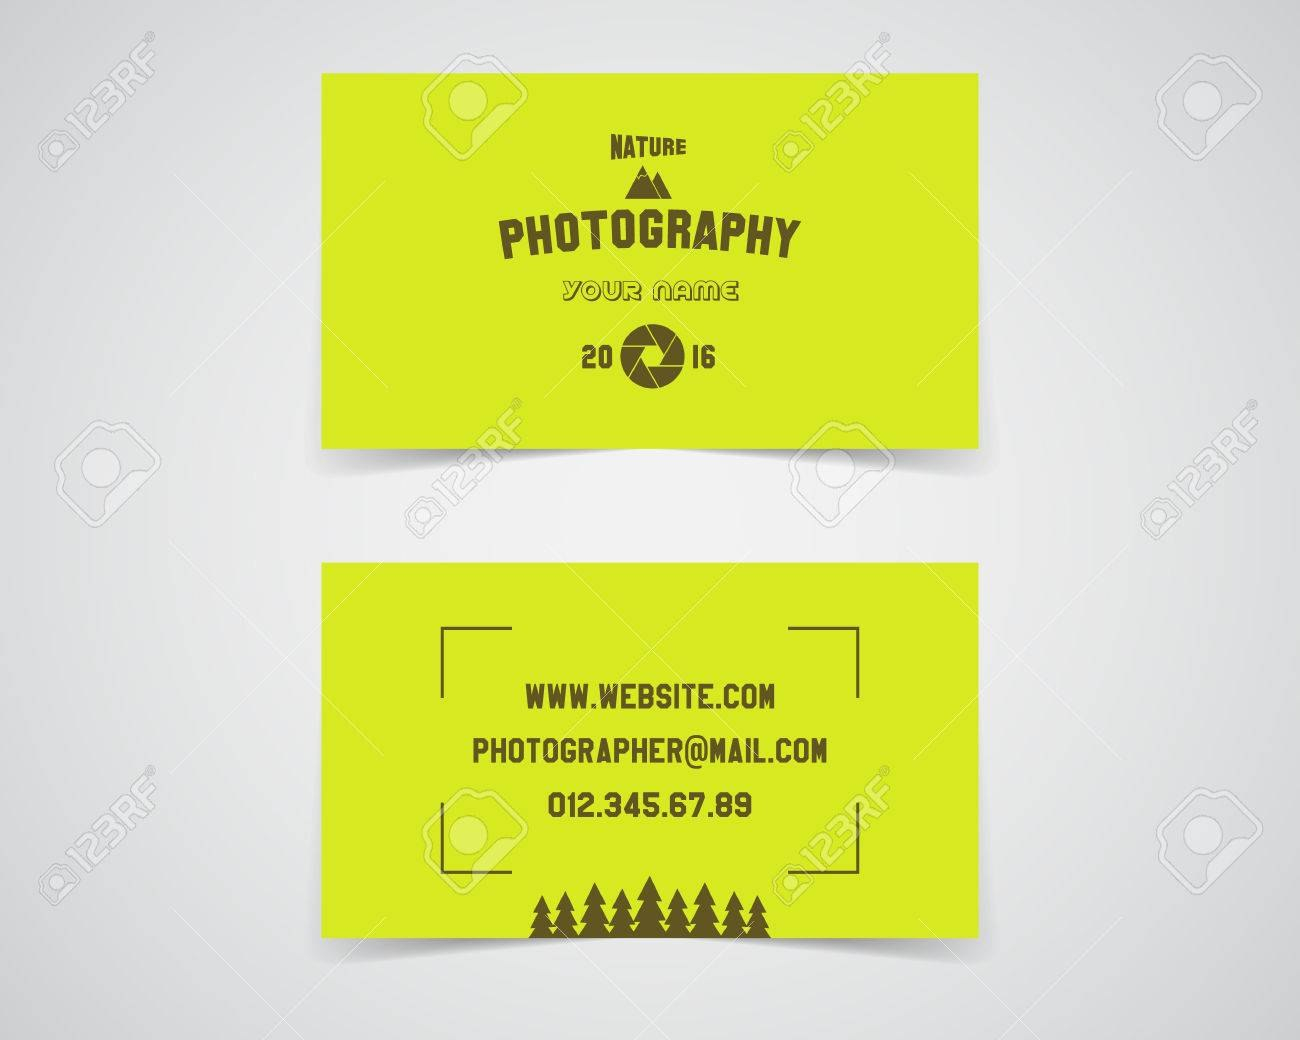 Modern Light Business Card Template For Nature Photography Studio With Photographer Id Card Template